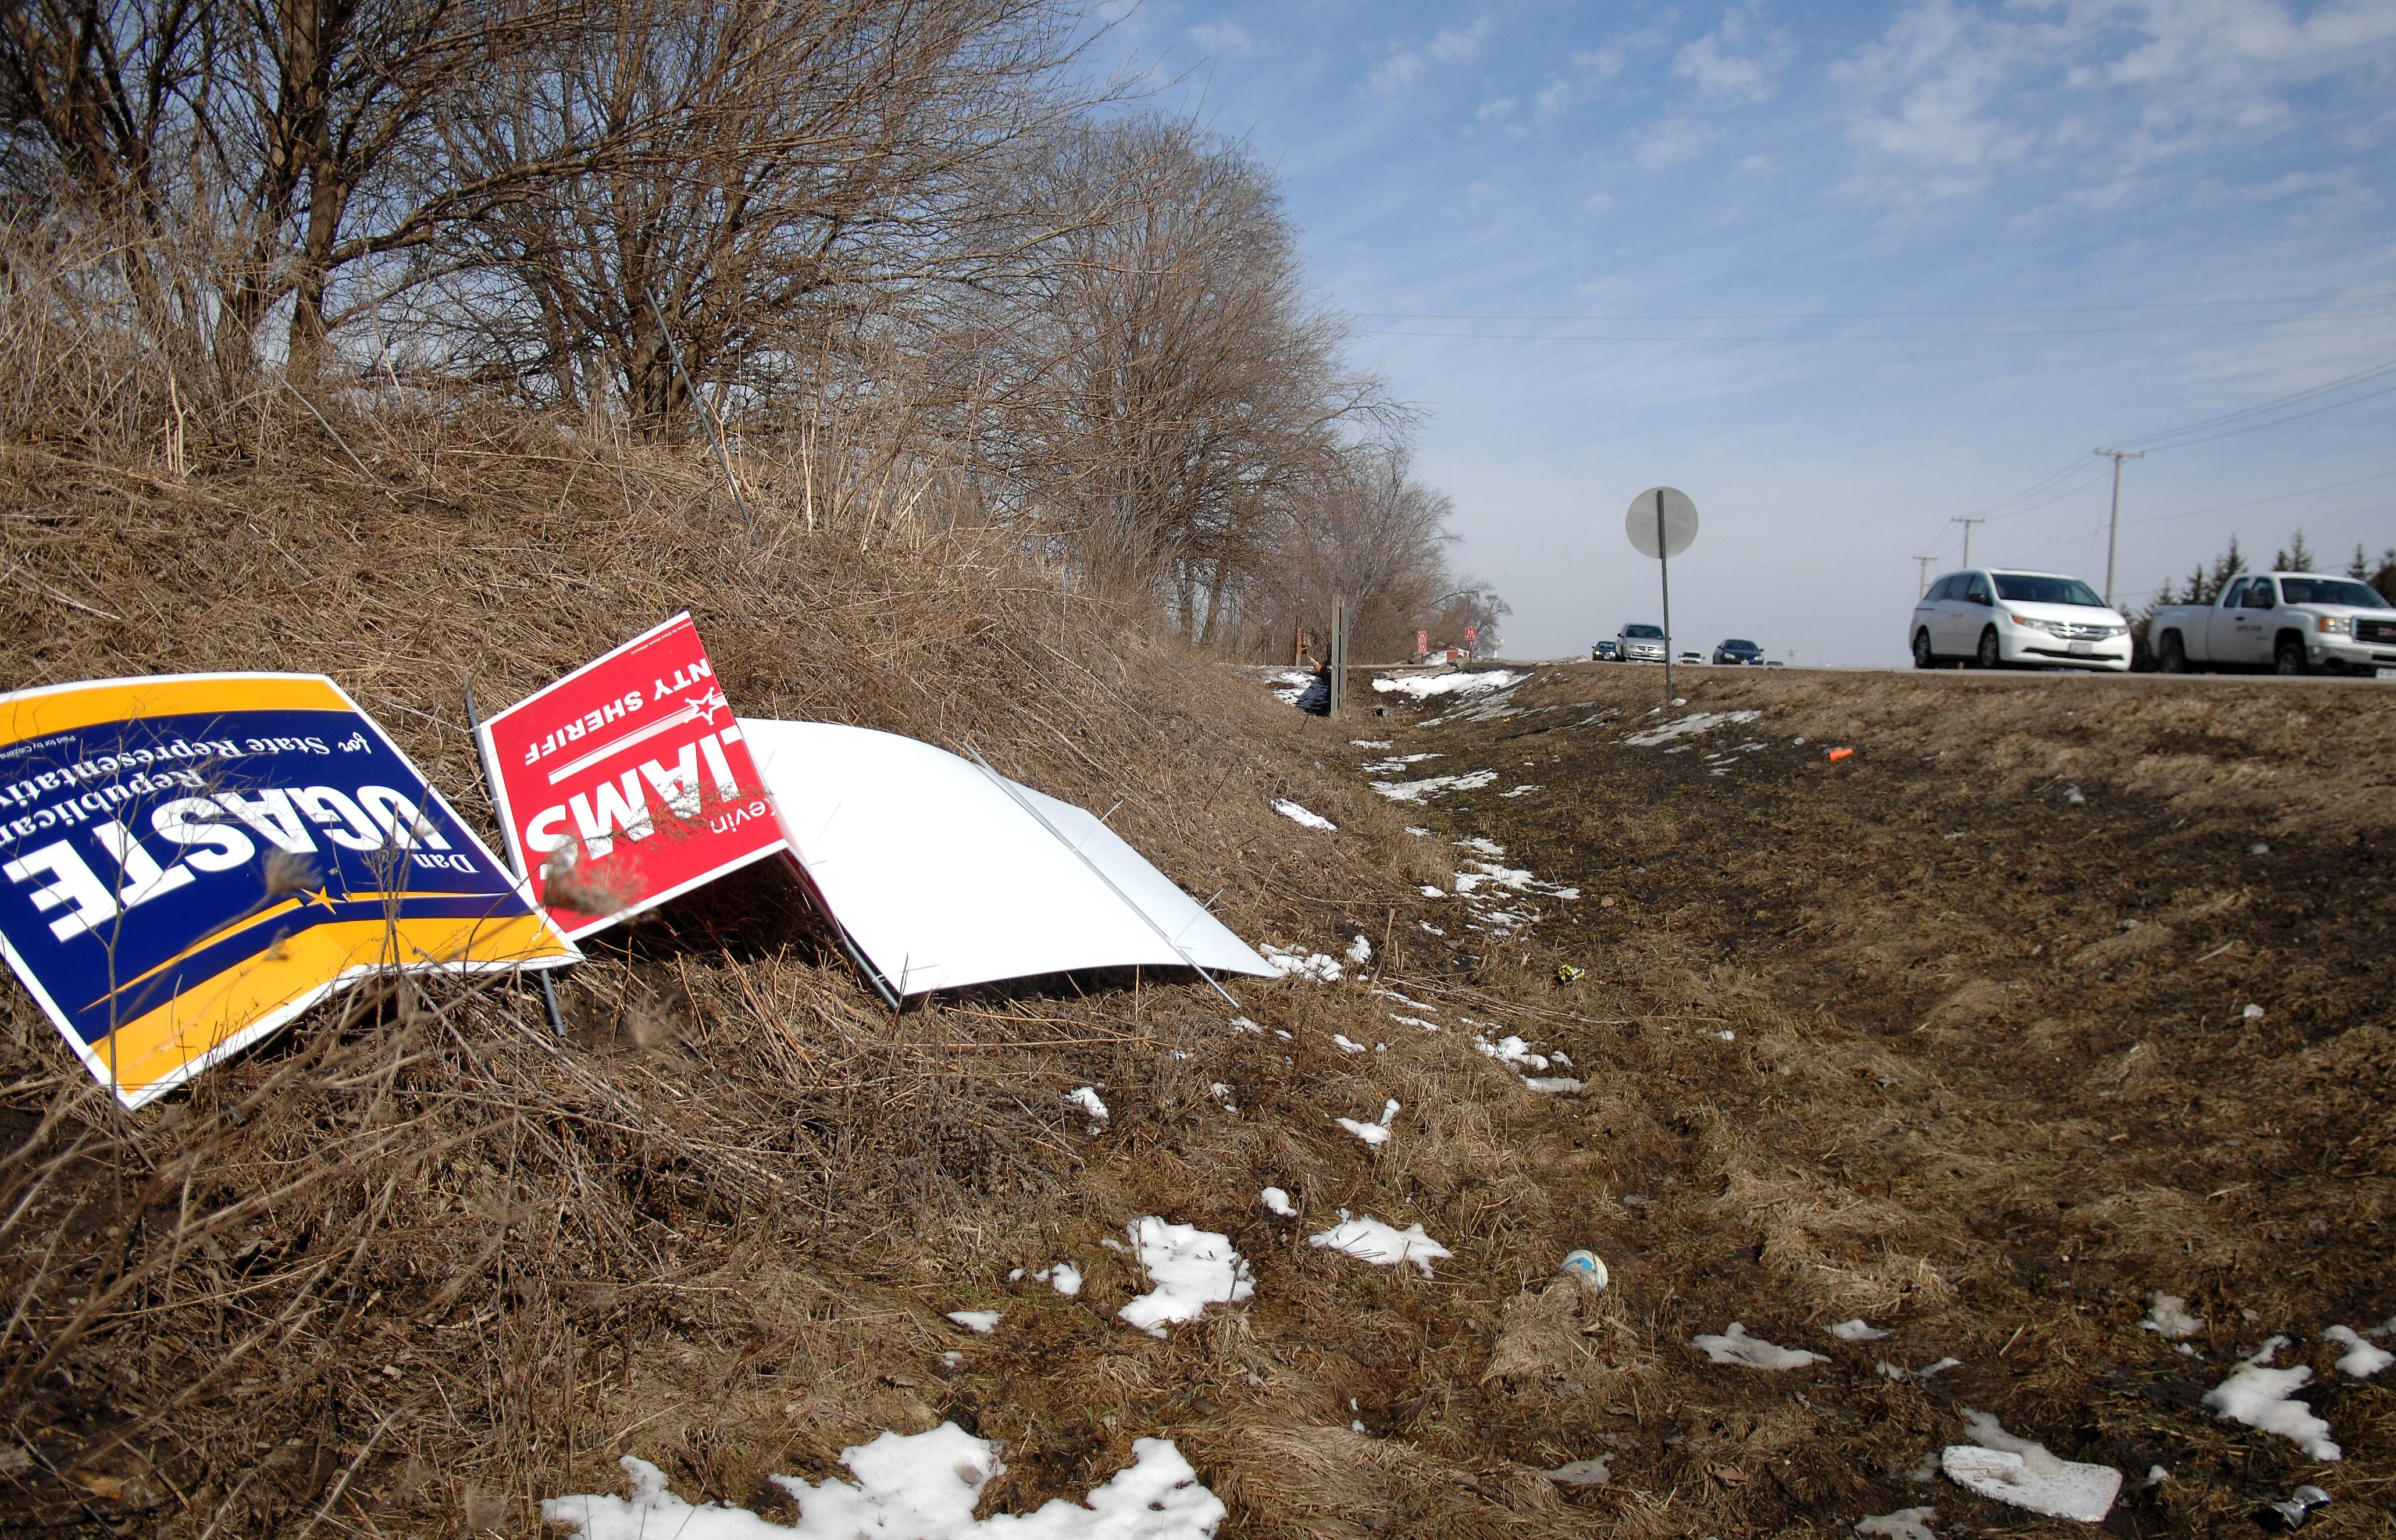 The wintry weather has made it tough to post campaign signs, with many planted in snow drifts or tossed around by high winds. The brutal winter has forced campaigns across the suburbs to adjust their tactics.